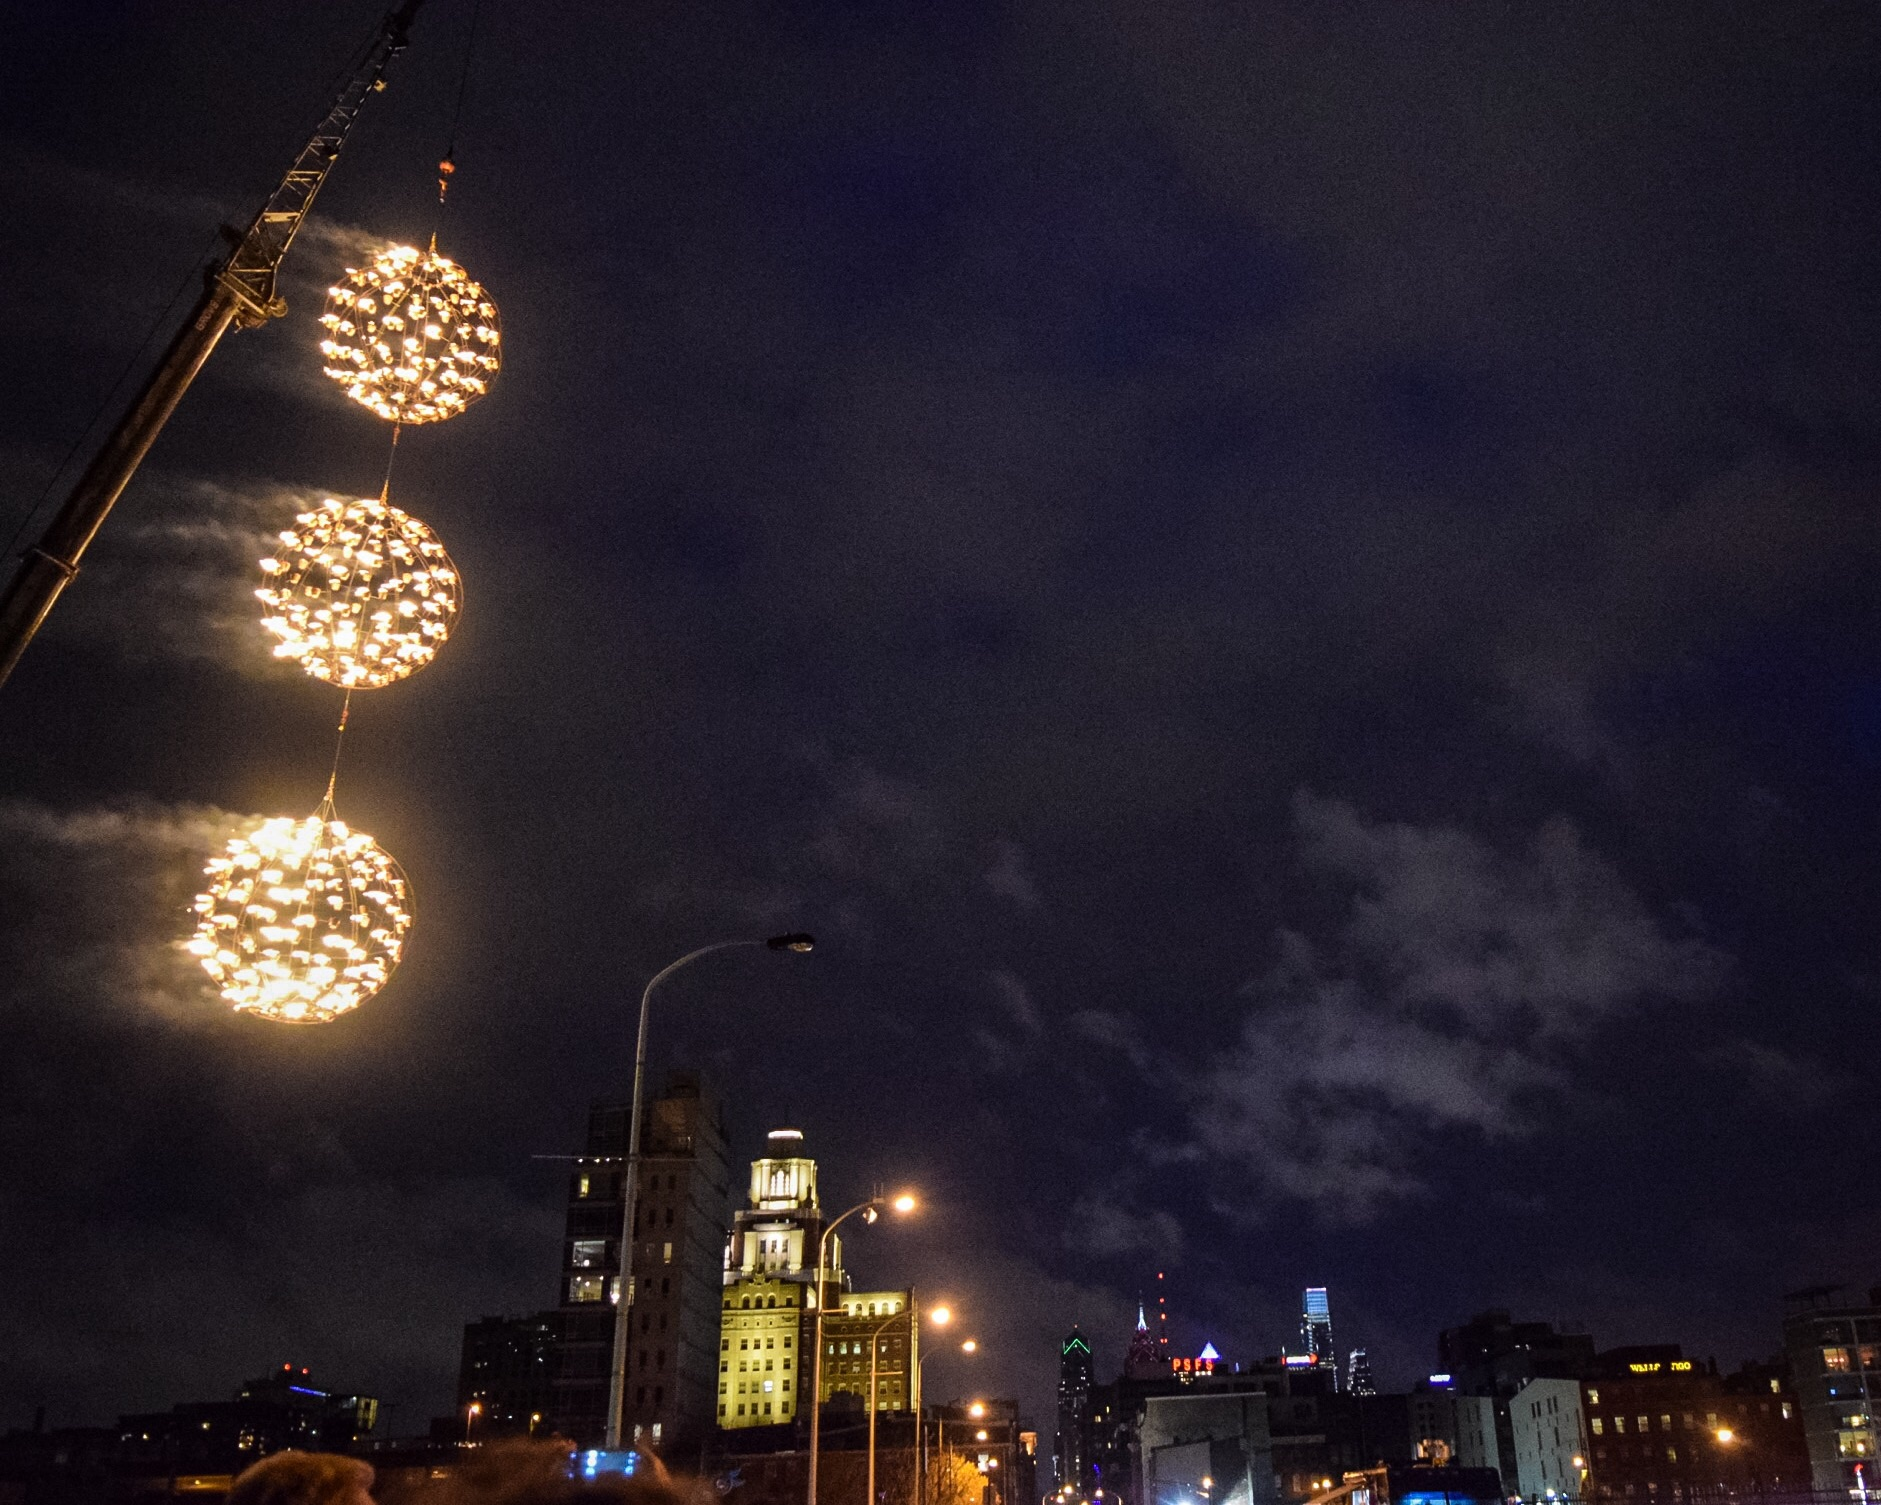 Three fiery globes burn above the entry to Penn's Landing and the  Article 13  installation.